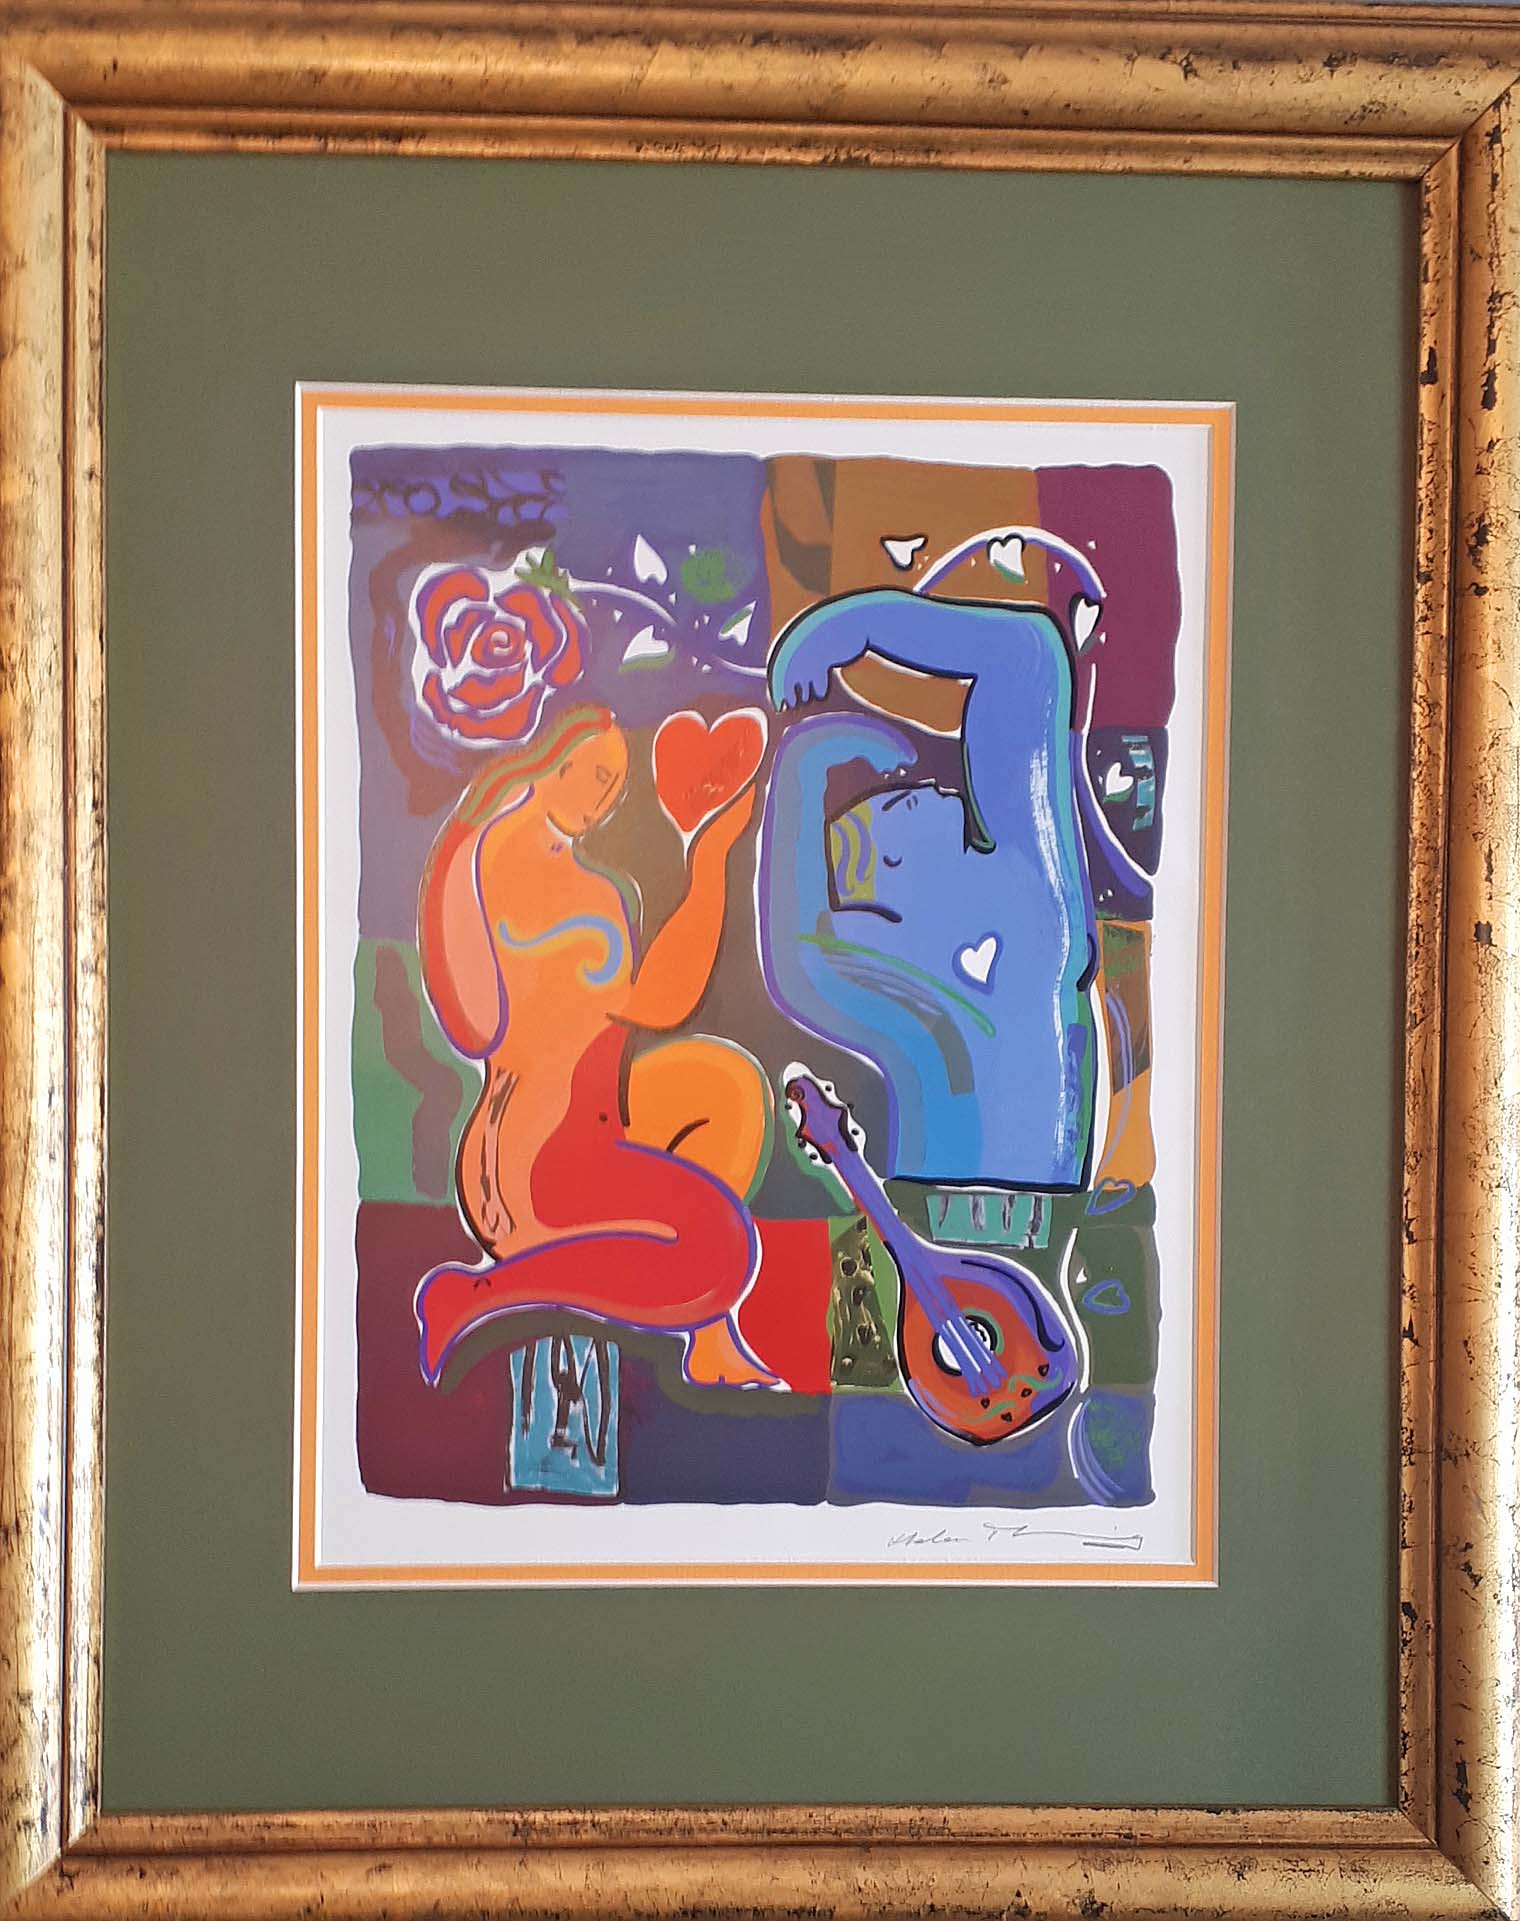 "Helen Manning, U.K., Print 1992, ""Music of Love"", Size: 20 x 25, Price: 175.00"